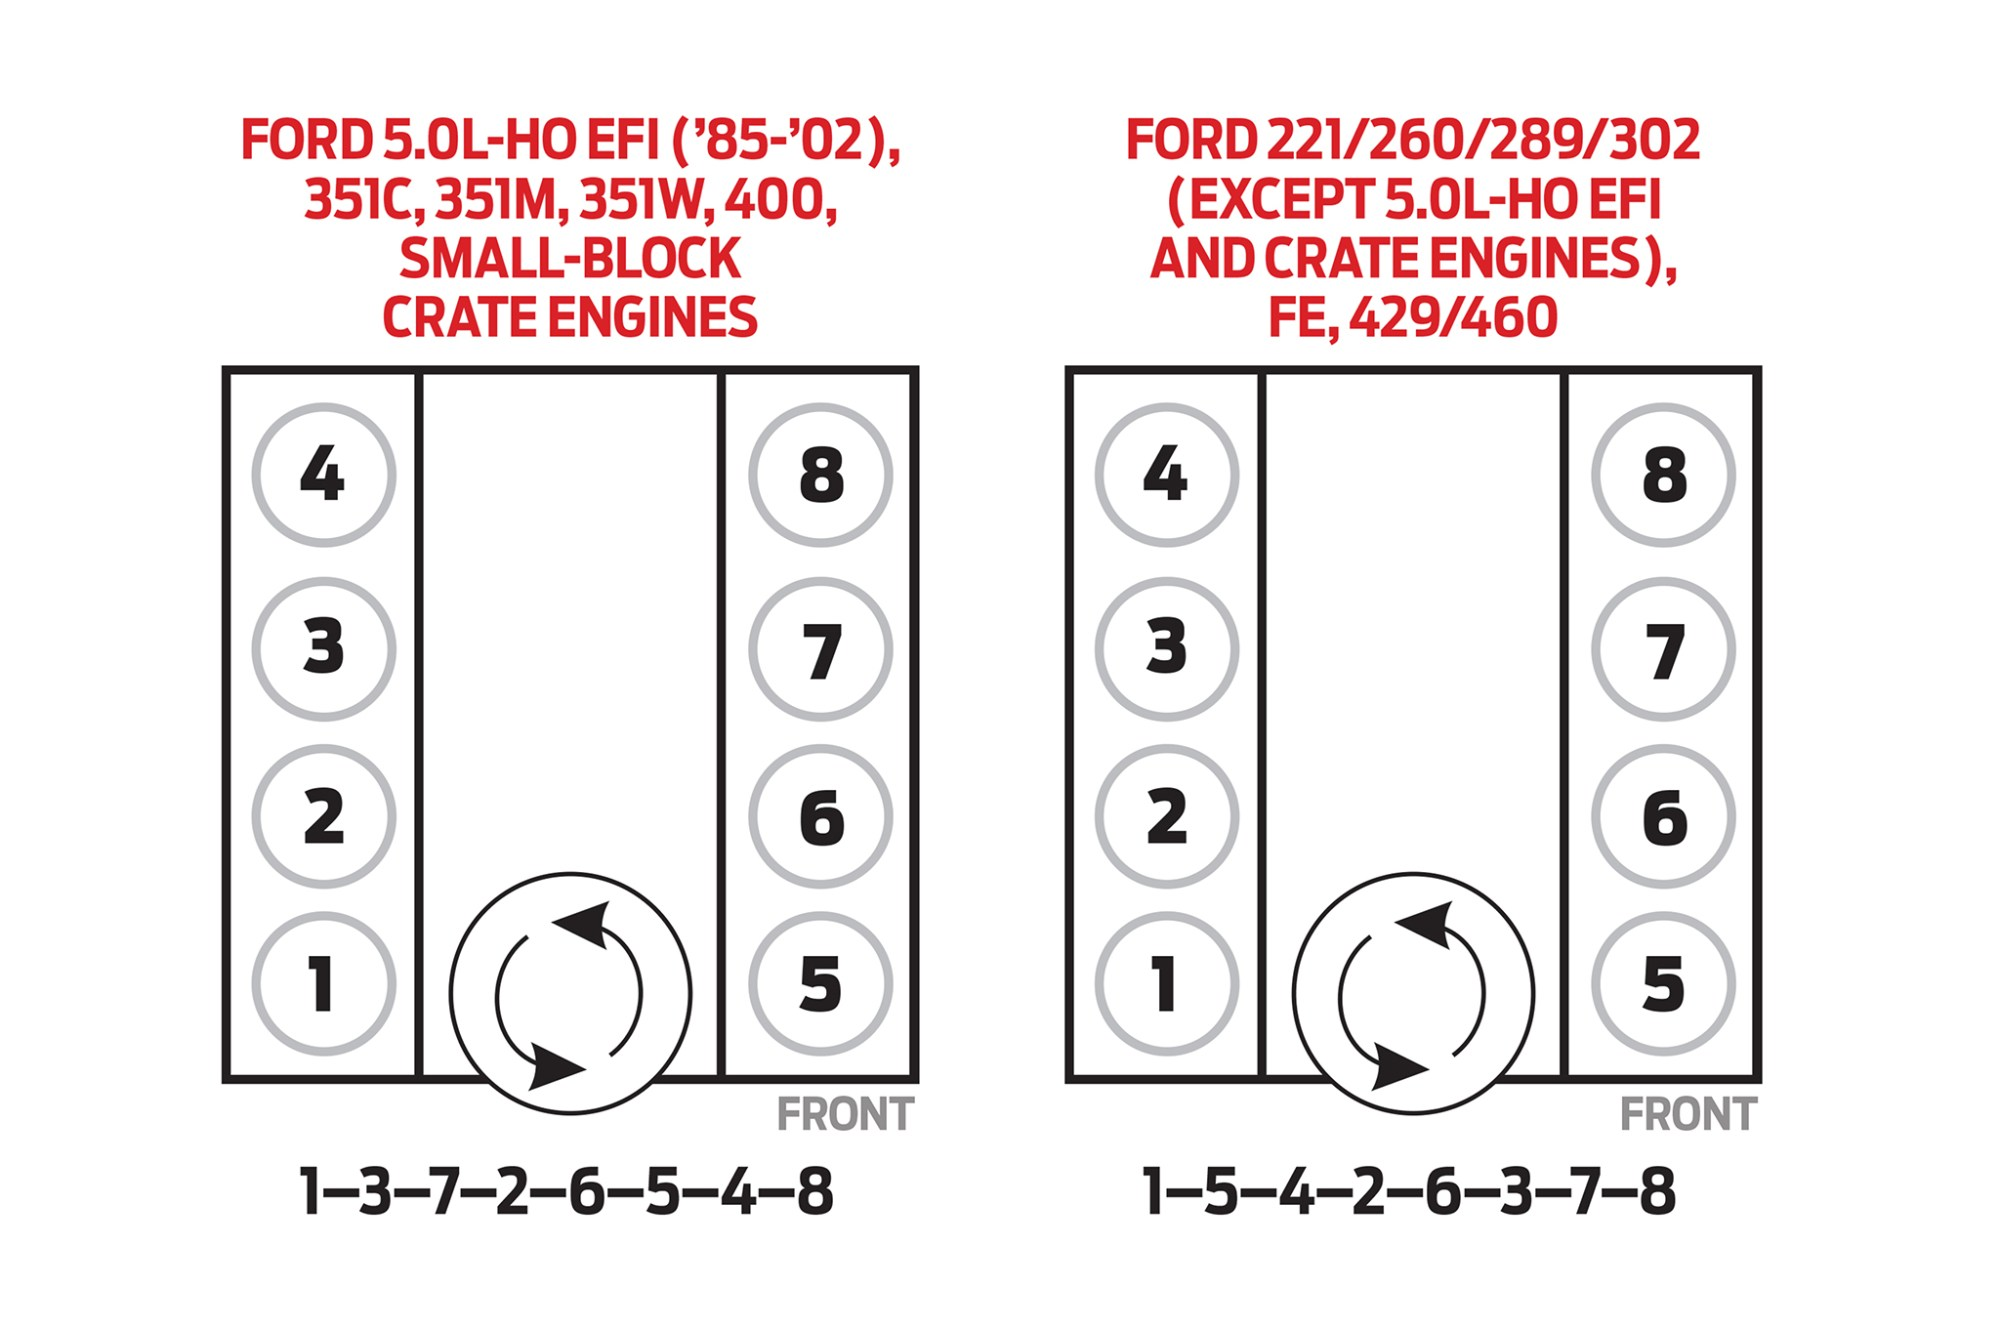 hight resolution of hot rod to the rescue this late model 5 0l sfi system runs ford 351 windsor distributor diagram besides ford y block firing order